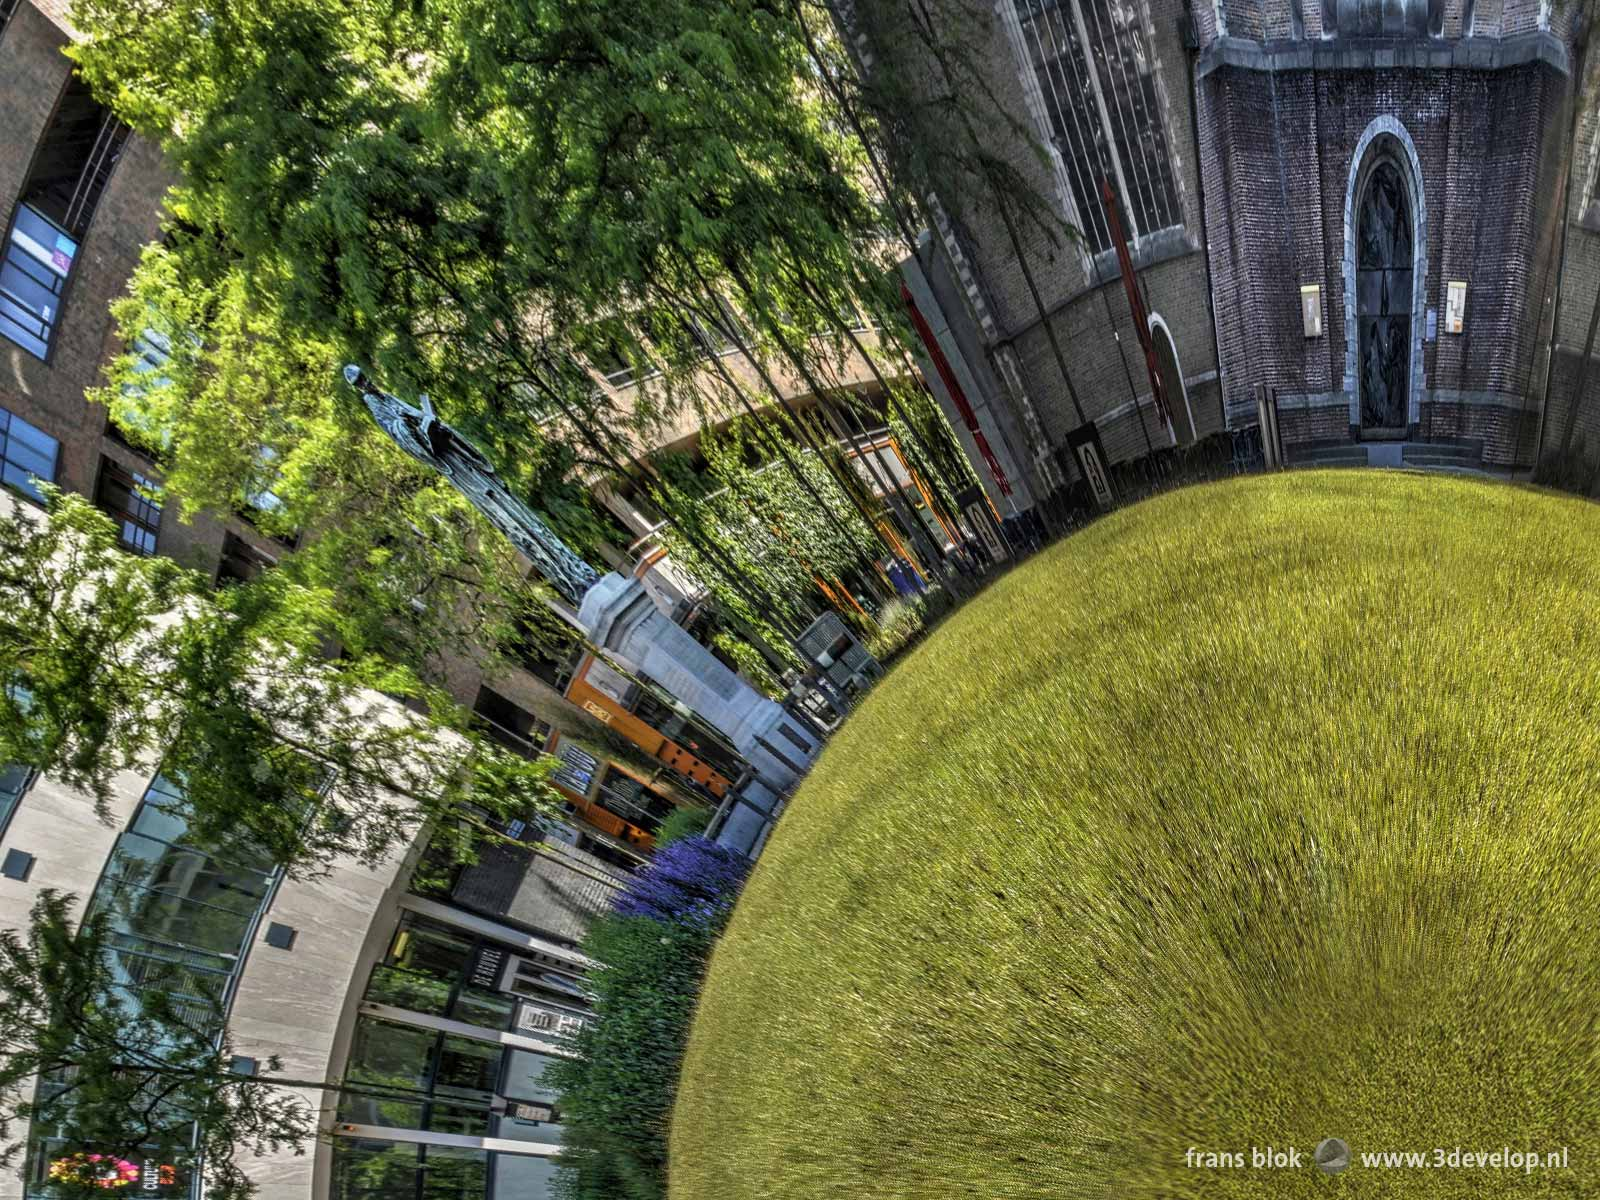 The Erasmus statue in Rotterdam on a spherical panorama of the park/square in front of Saint Lawrence's Church.